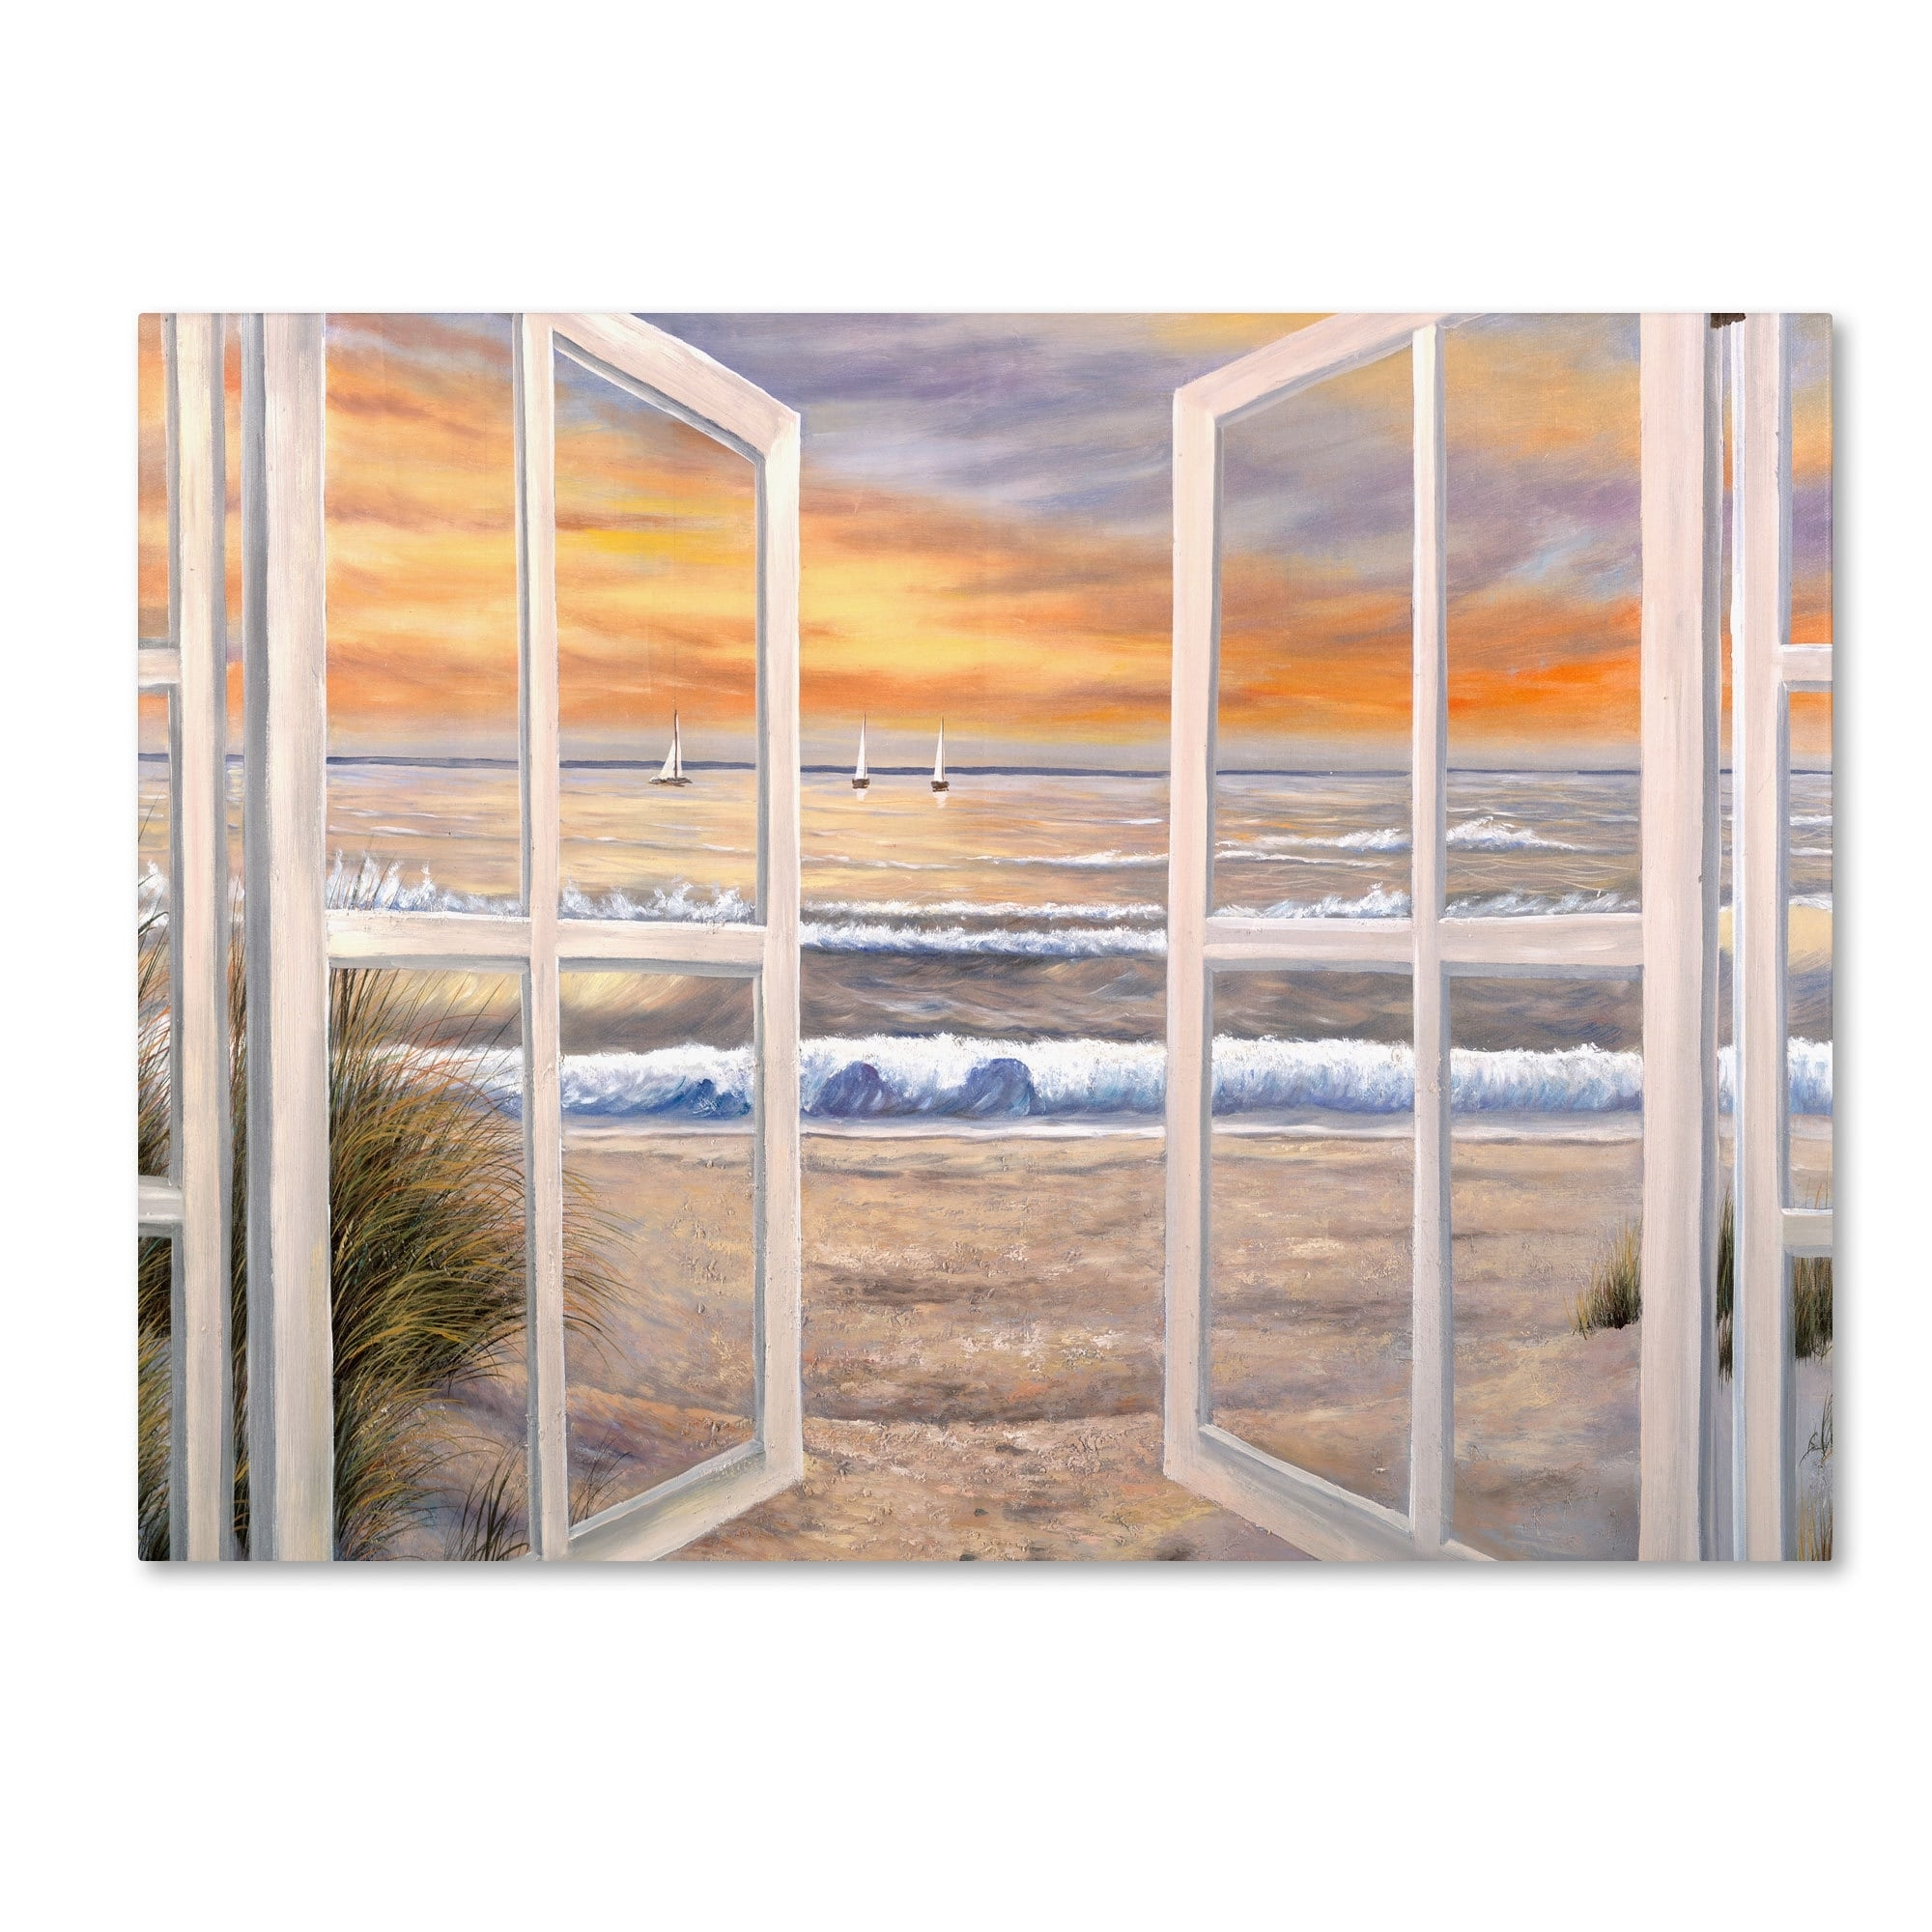 Joval 'elongated Window On Canvas' Canvas Wall Art – Free Shipping Intended For Most Popular Joval Canvas Wall Art (View 6 of 15)